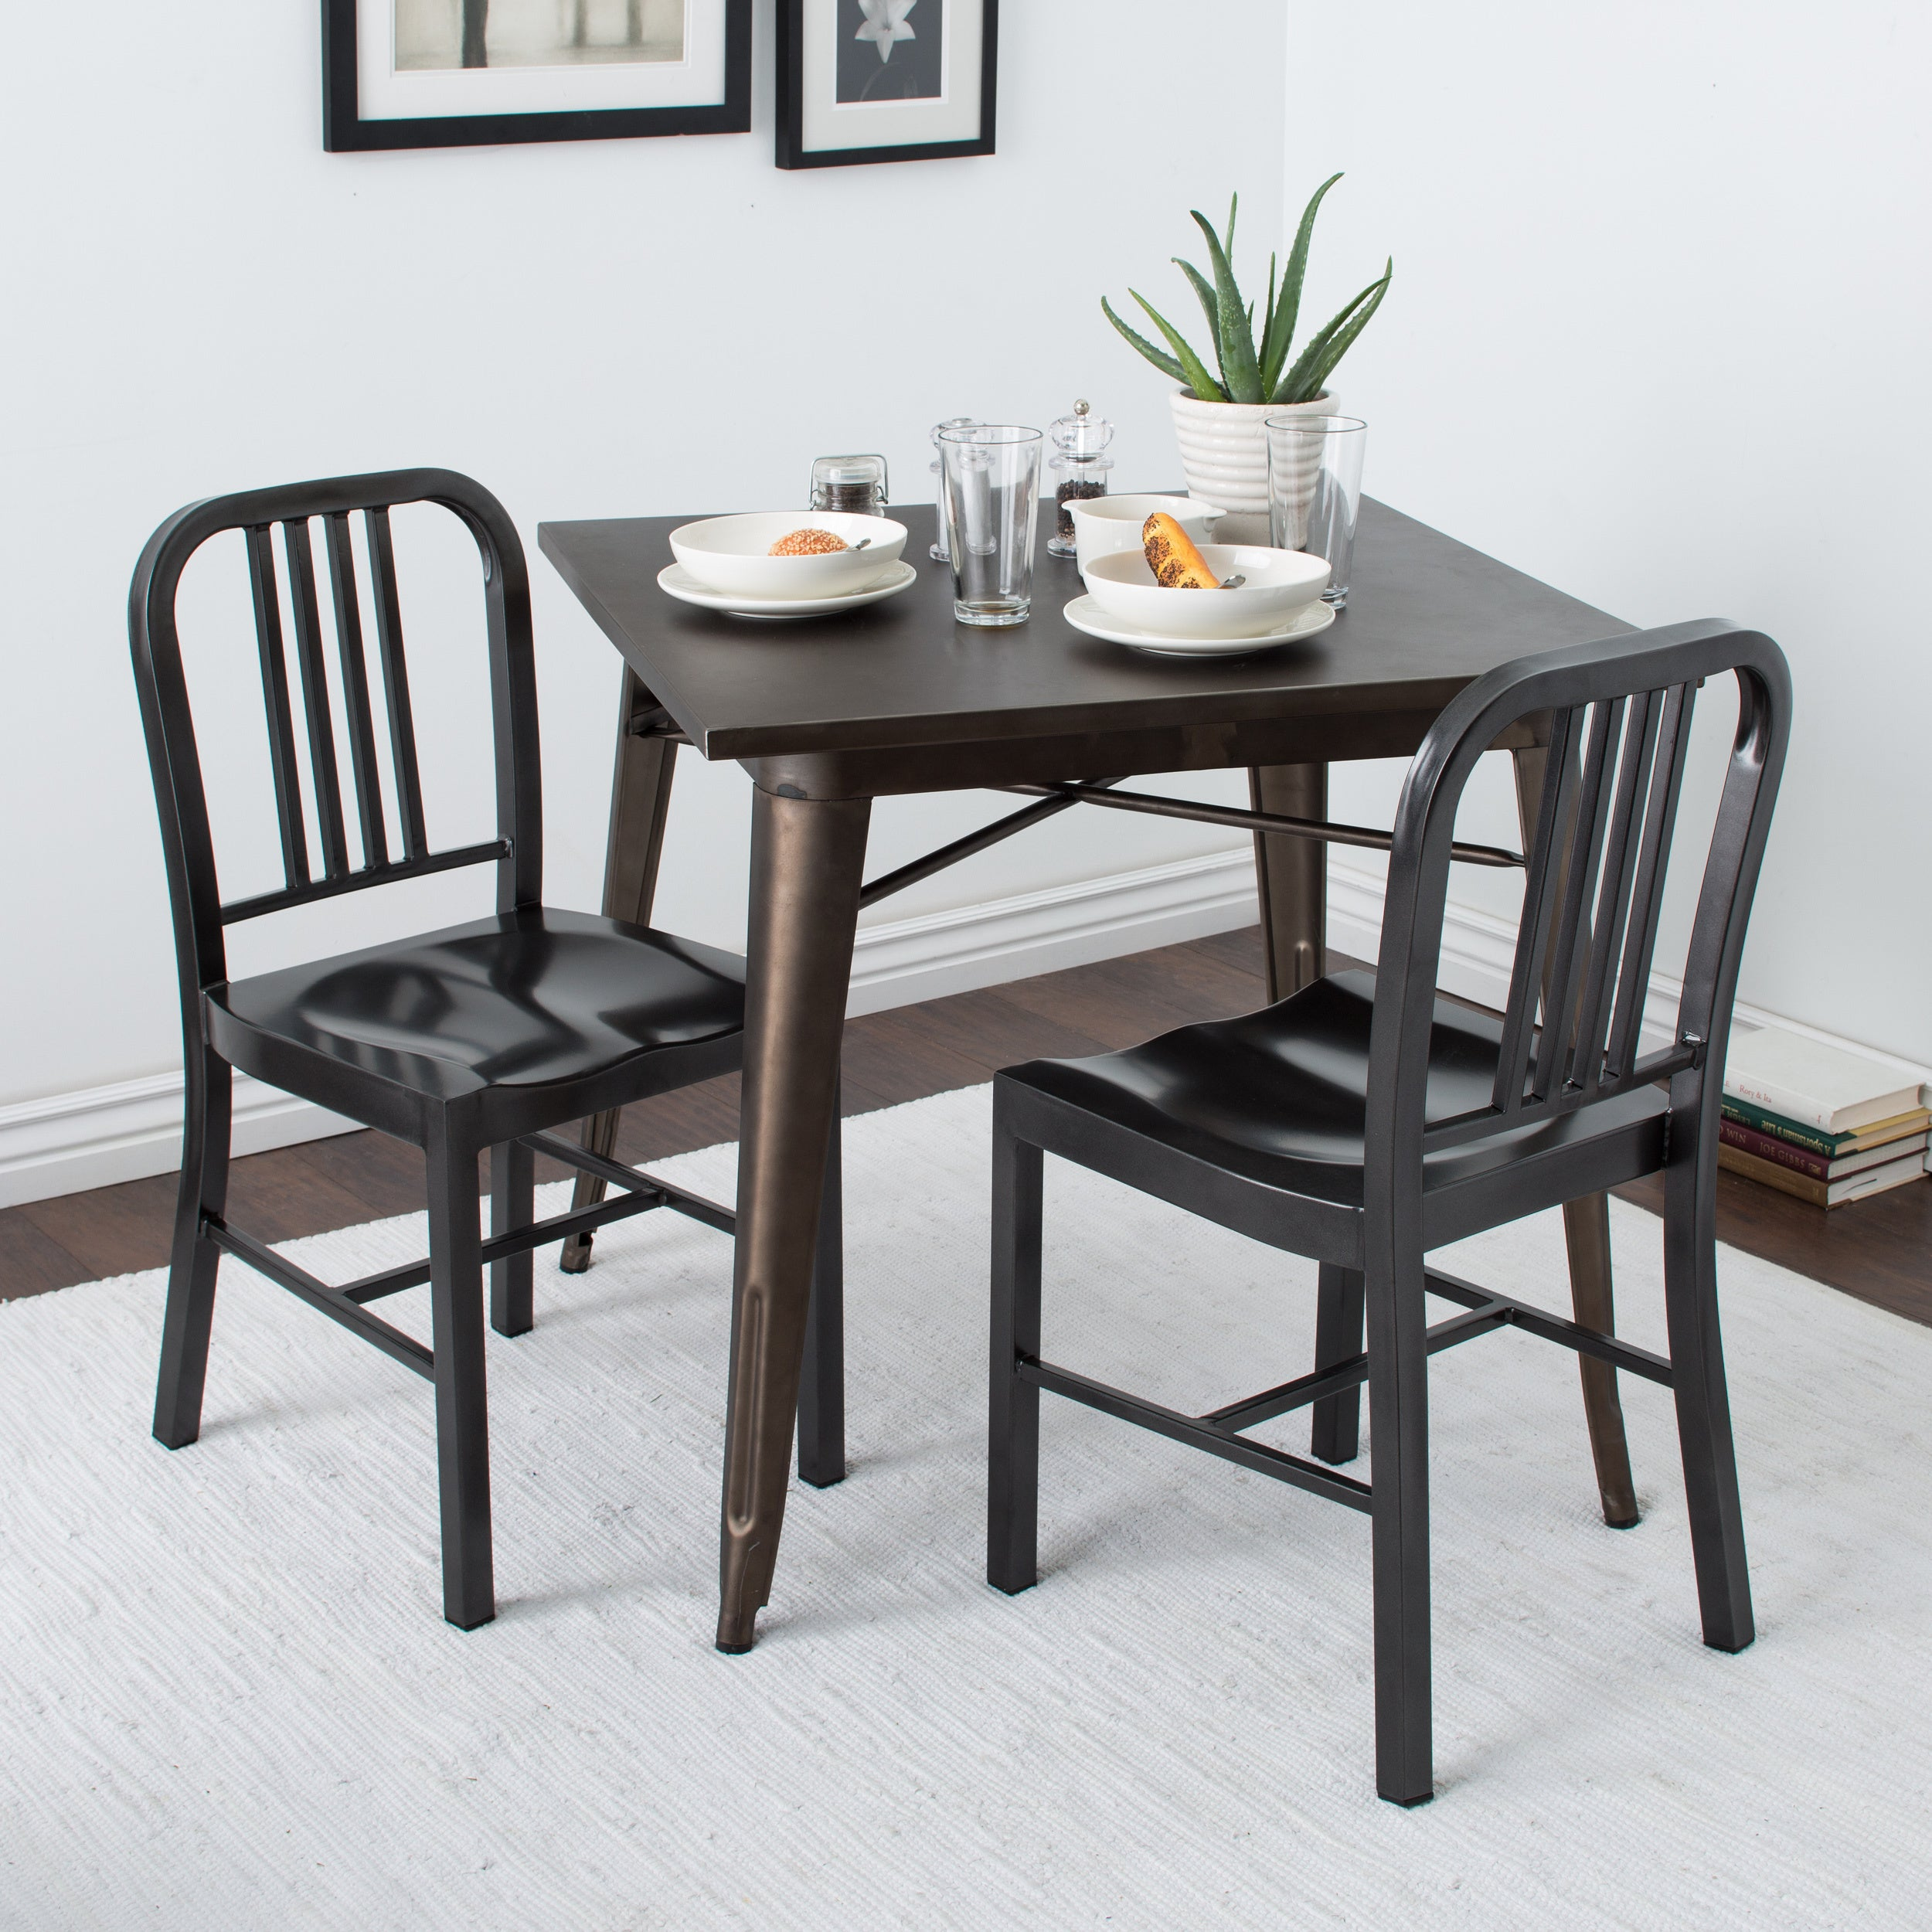 Charcoal Metal Dining Chairs (Set of 2), Black